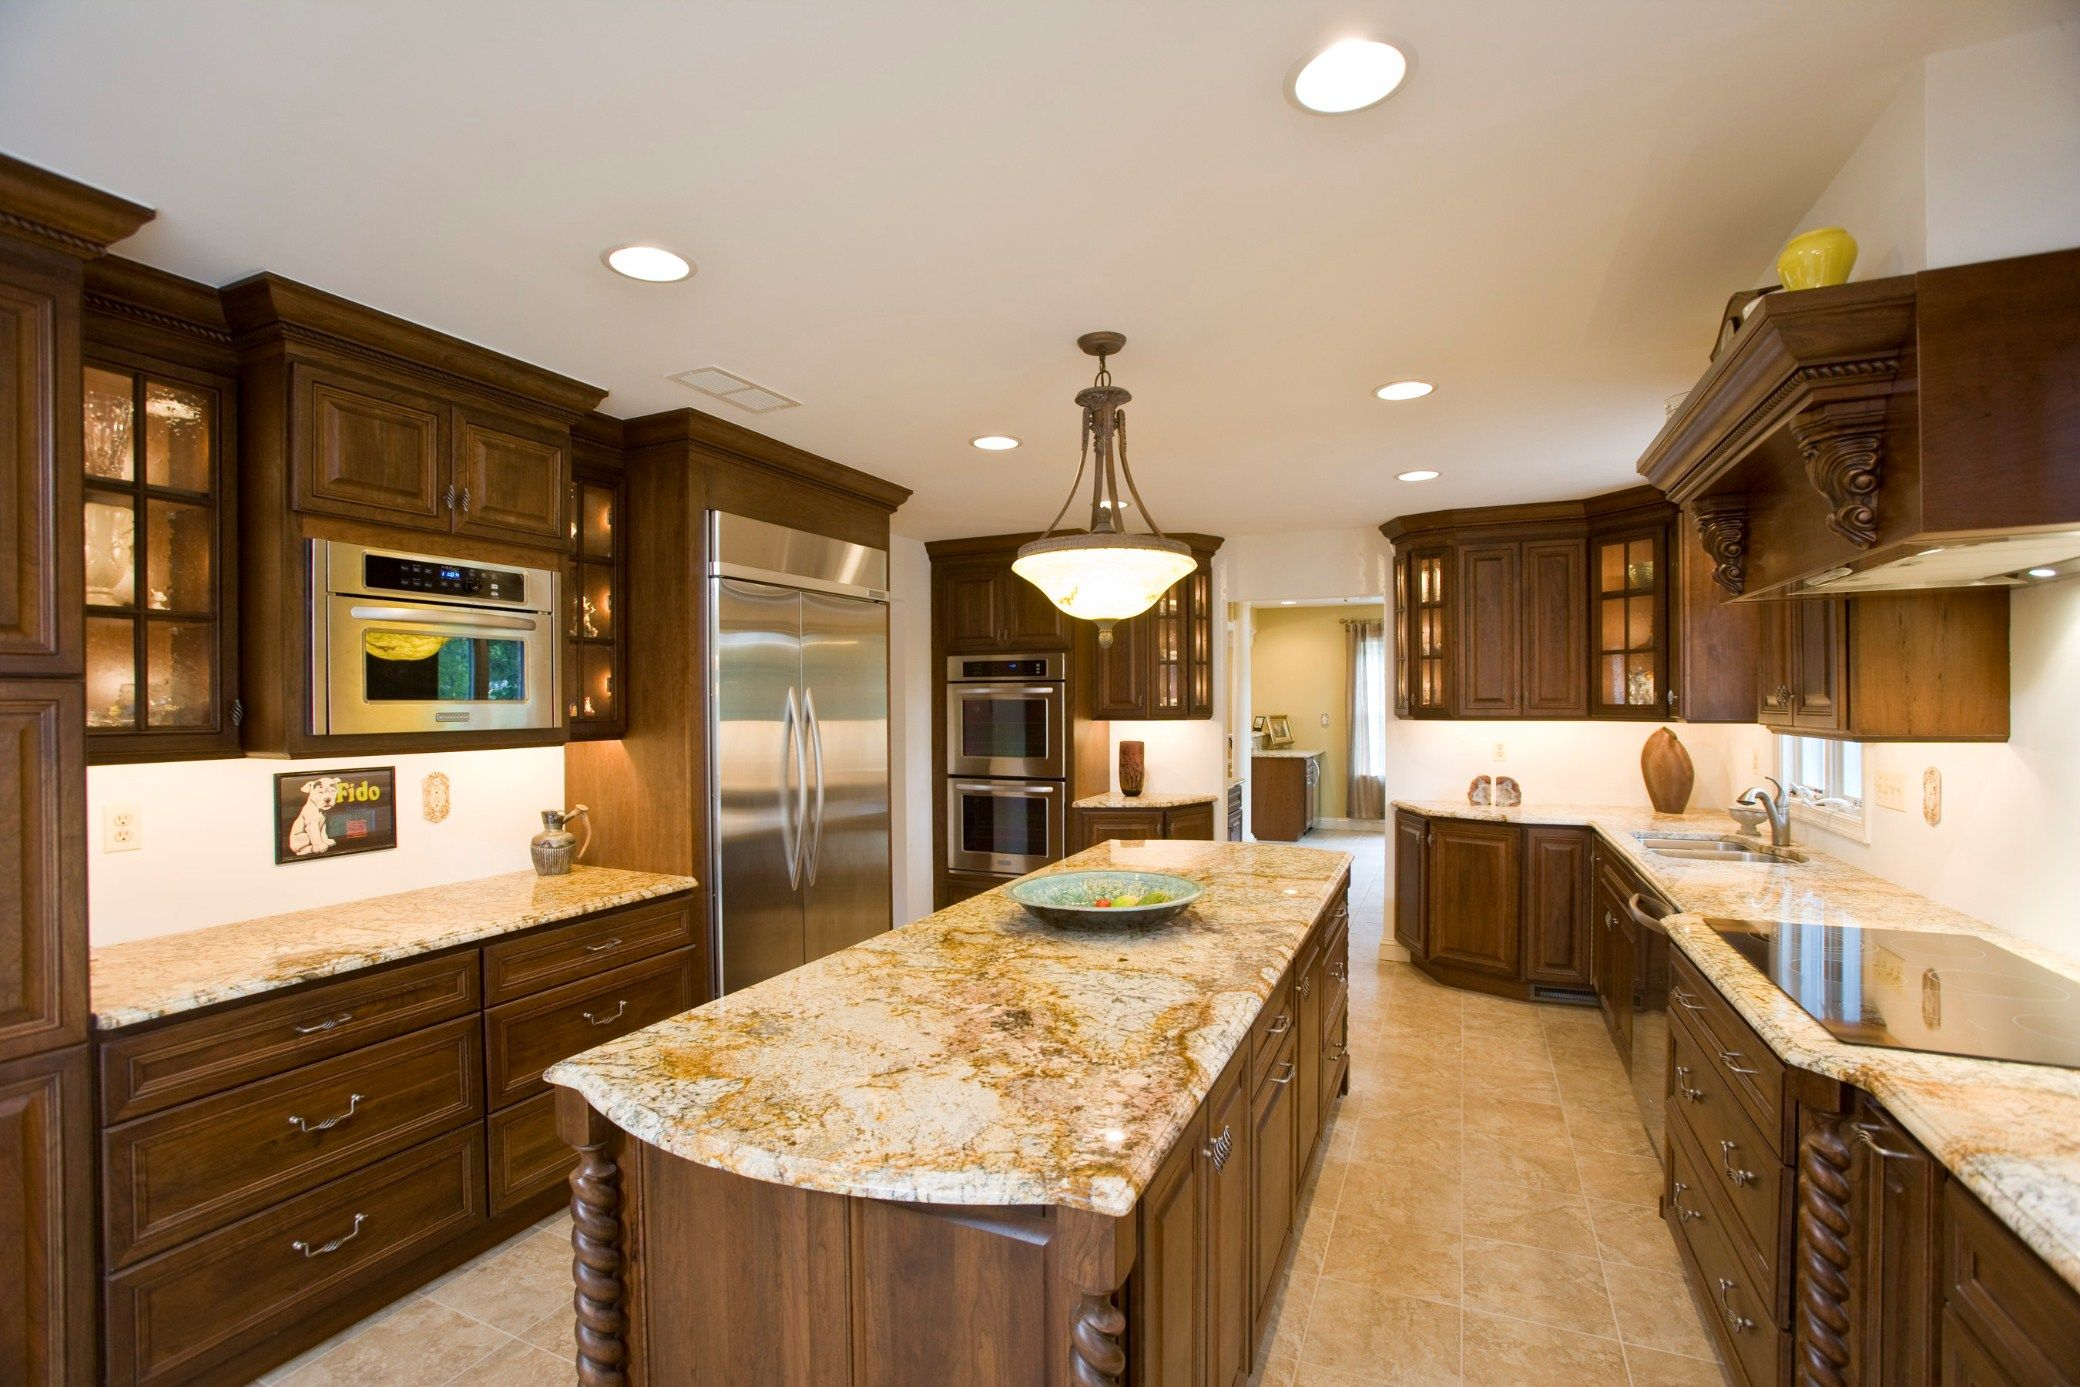 What Color Countertops Go With White Cabinets Oak 43cabinets 43and 43white 43granite 43counters Granite